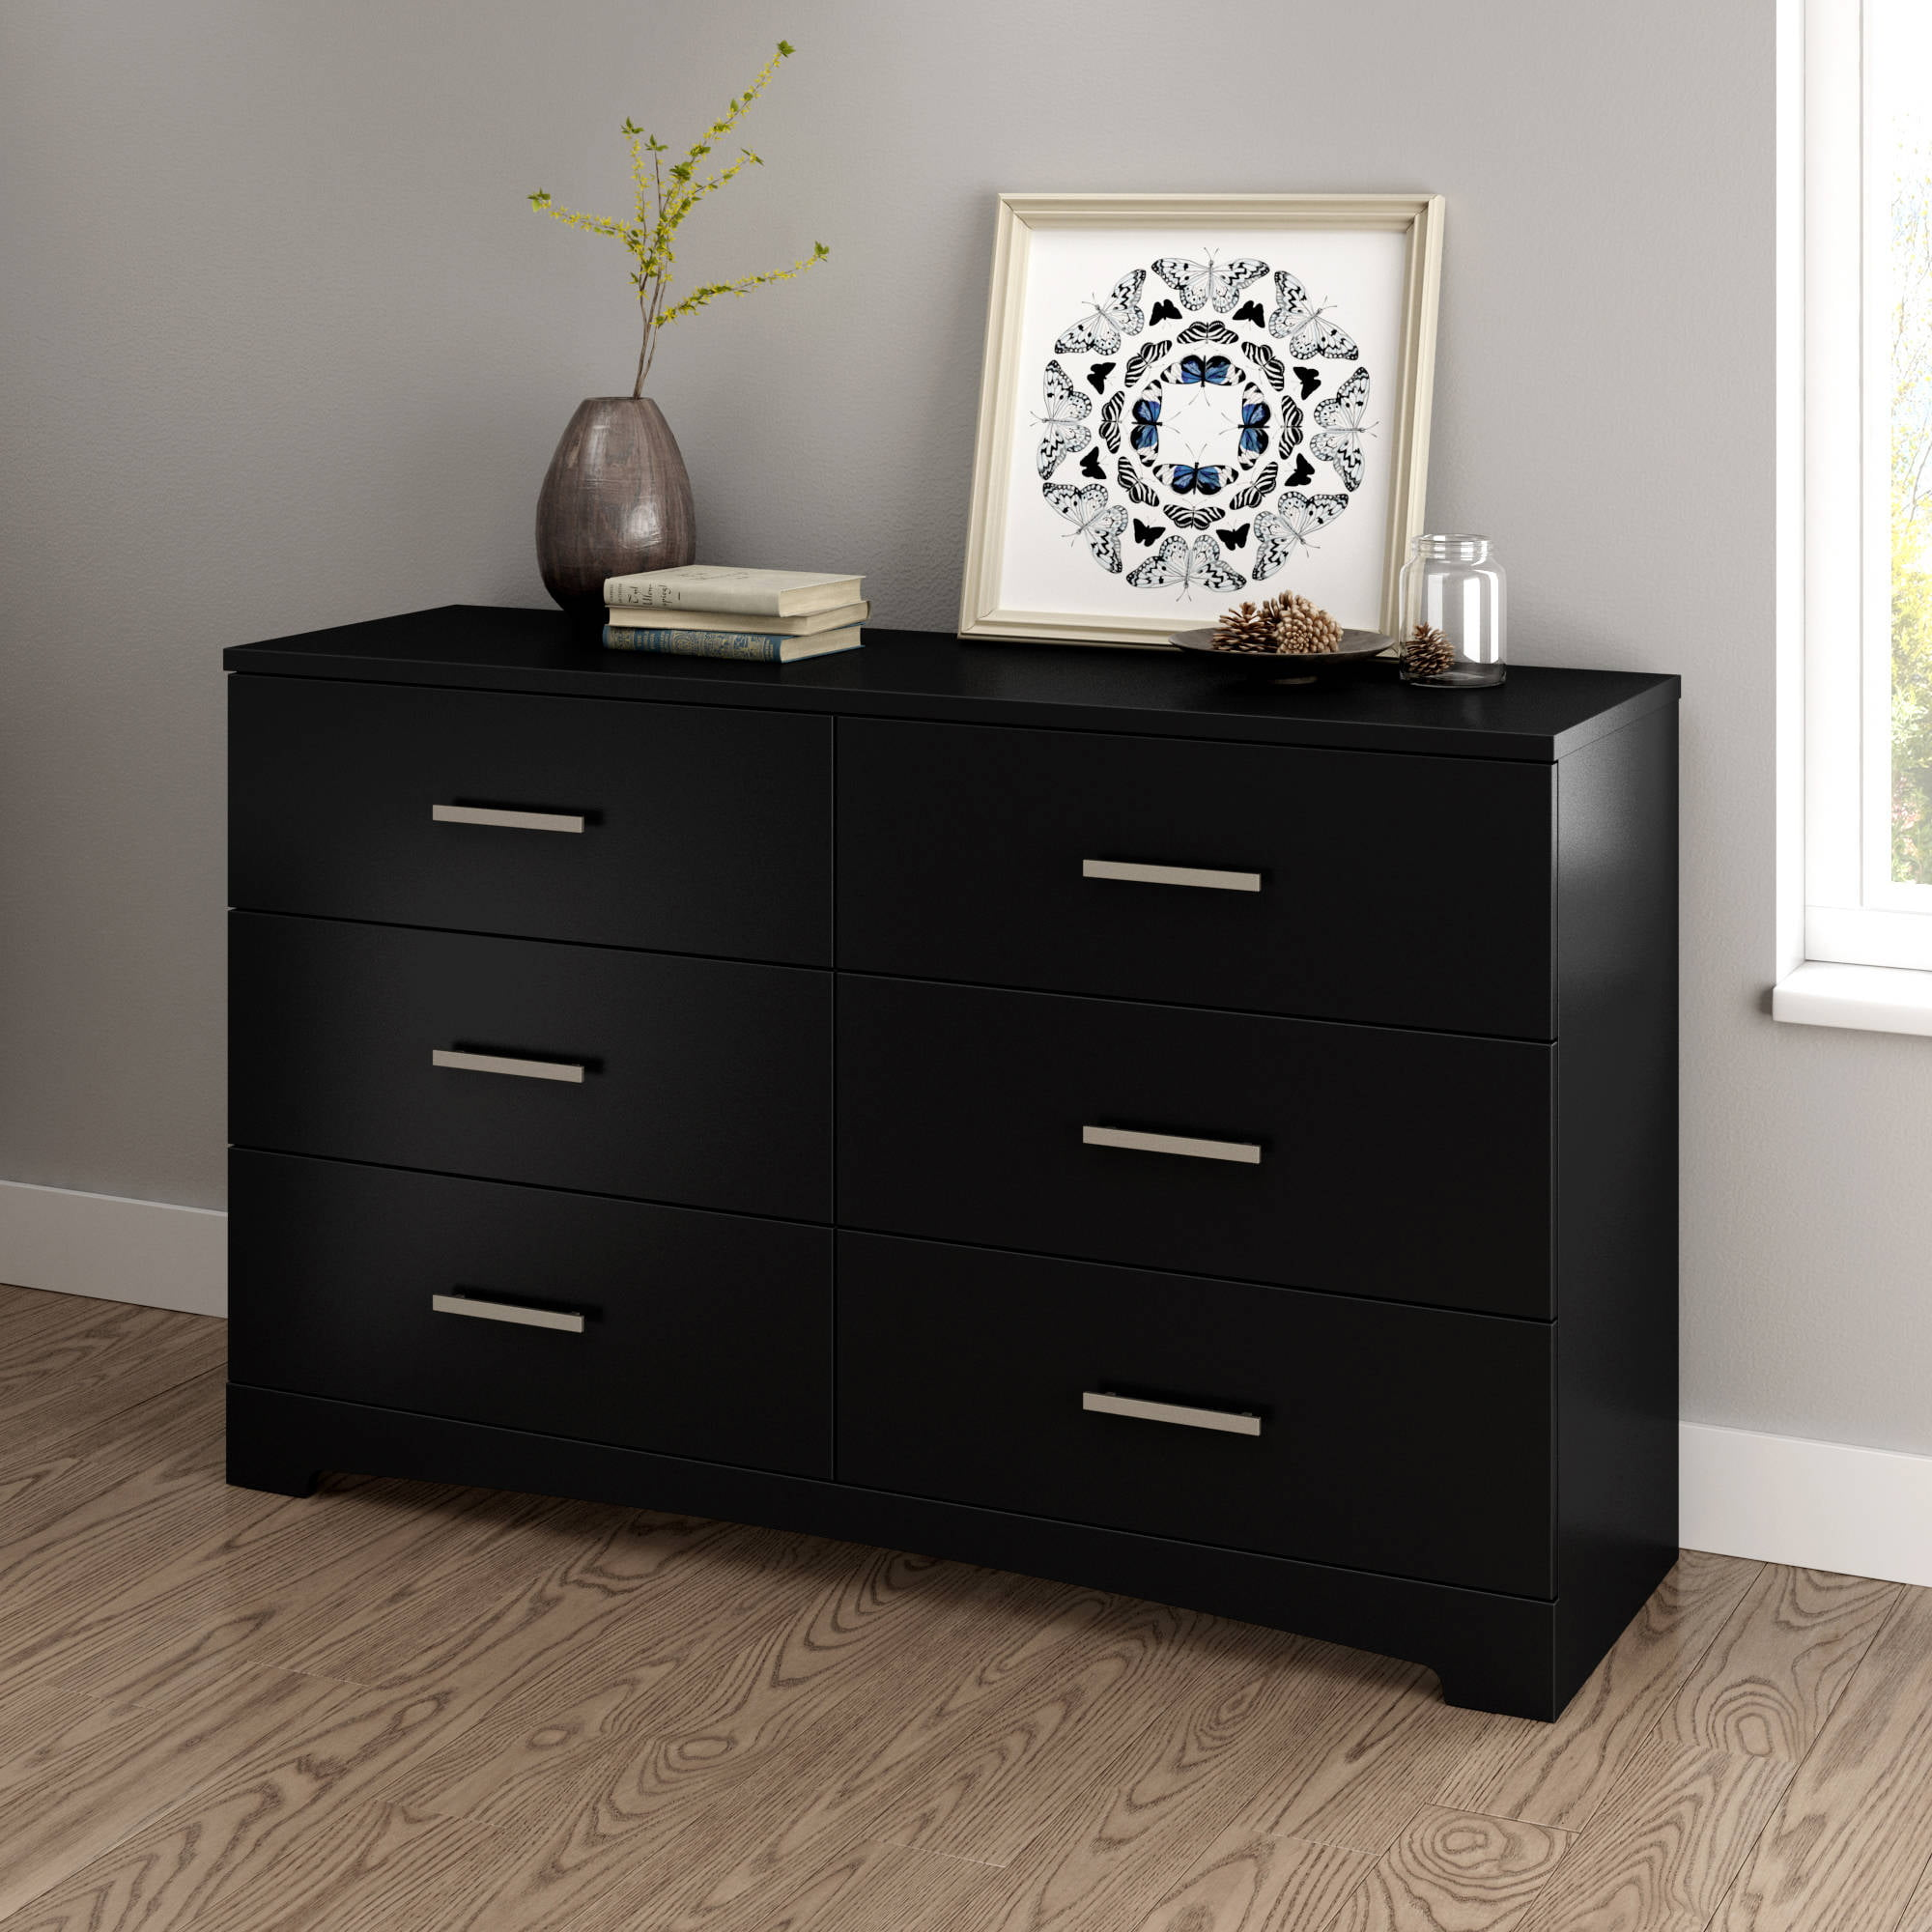 off for black drawer ikea used storage dresser sale malm